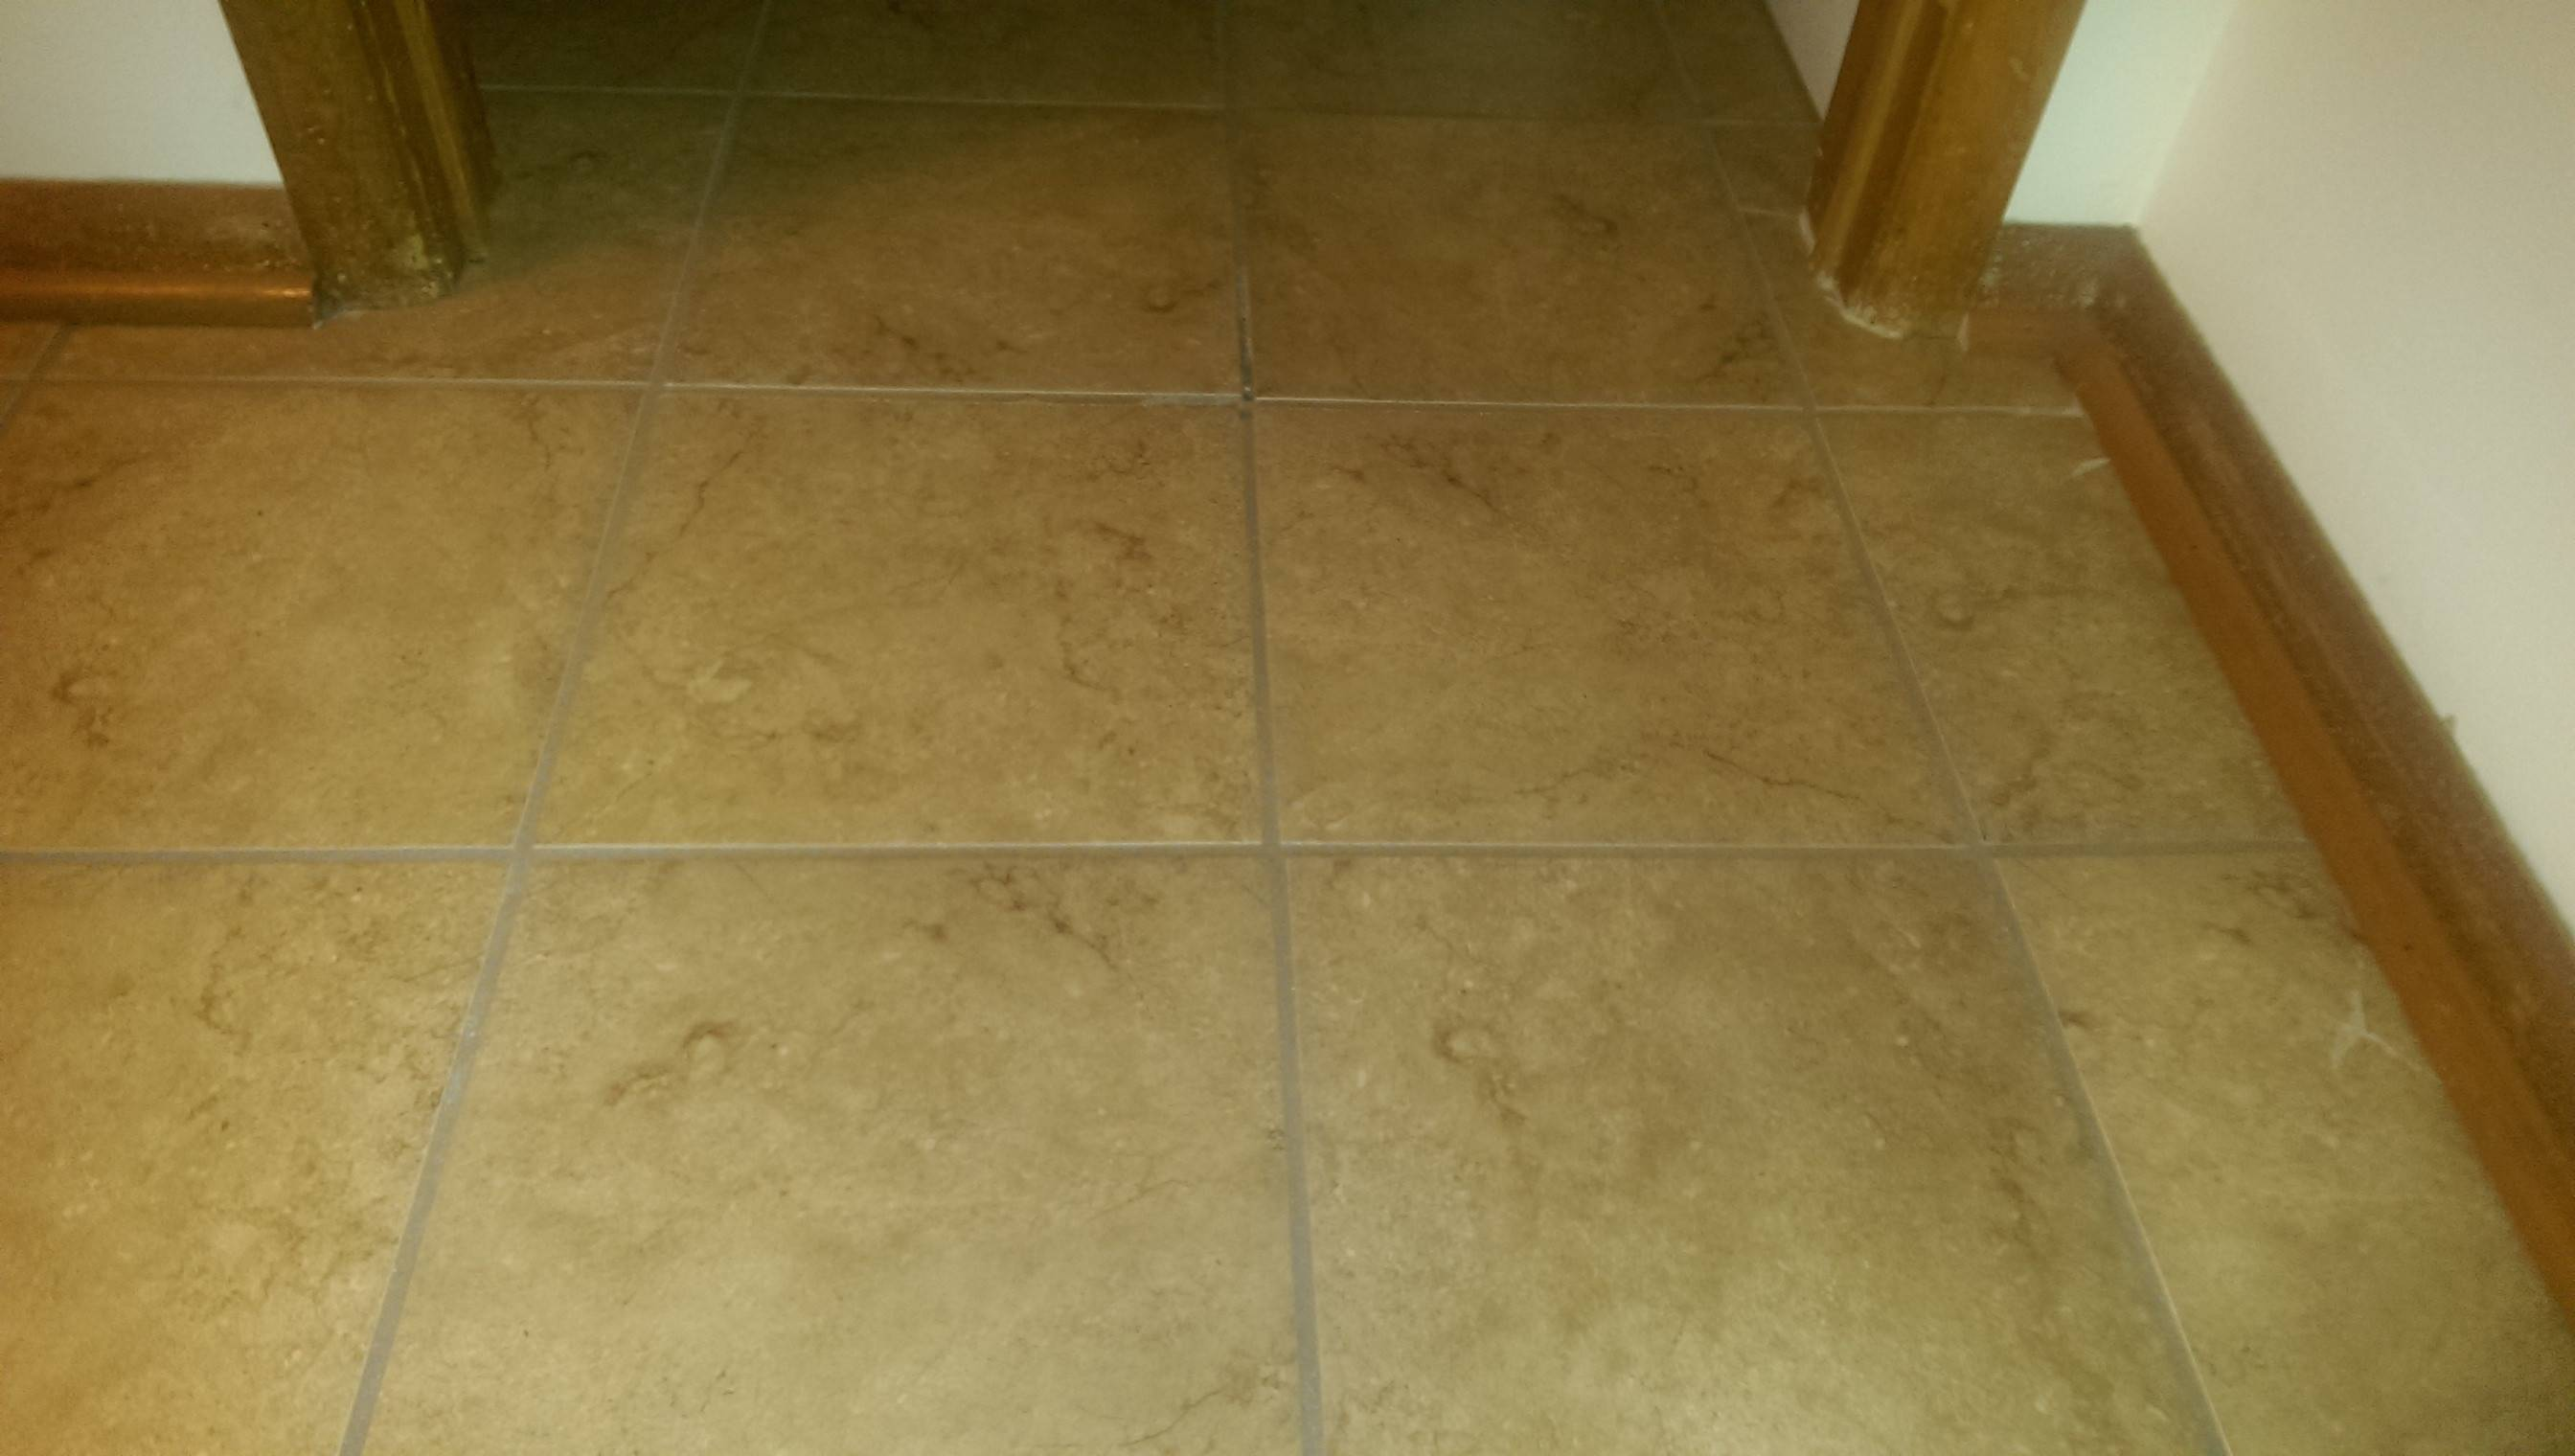 floating floor tile snapstone can unlevel fixed  get in